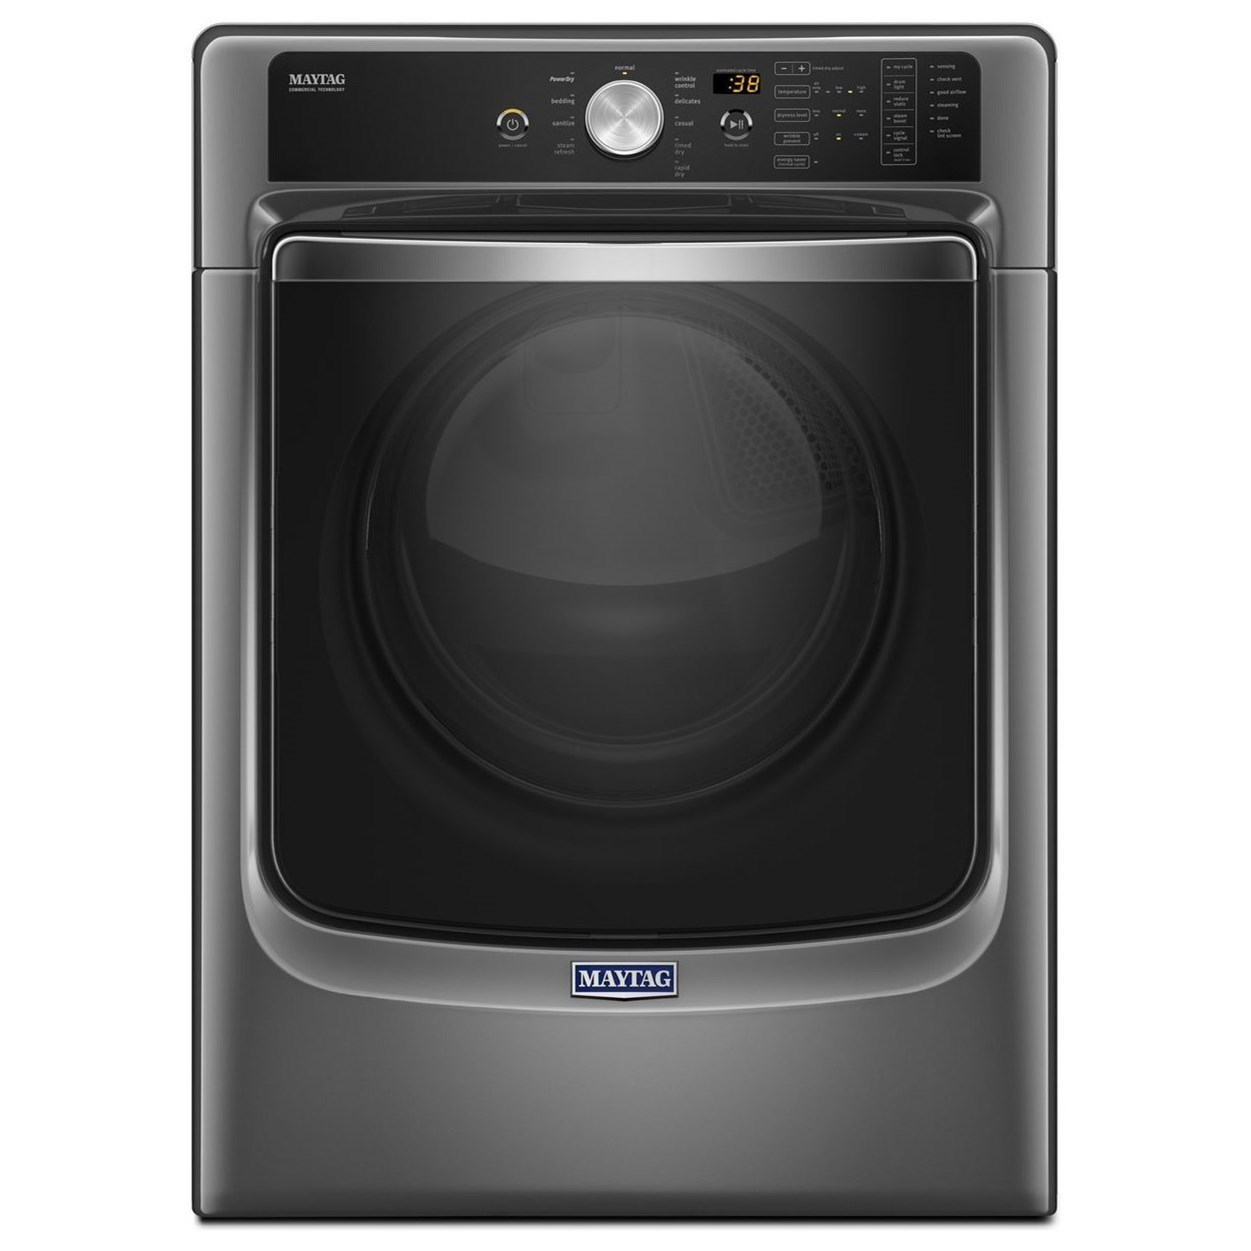 Maytag Front Load Gas Dryer 5500 Series 7.4 Cu. Ft Large Capacity Dryer - Item Number: MGD5500FC